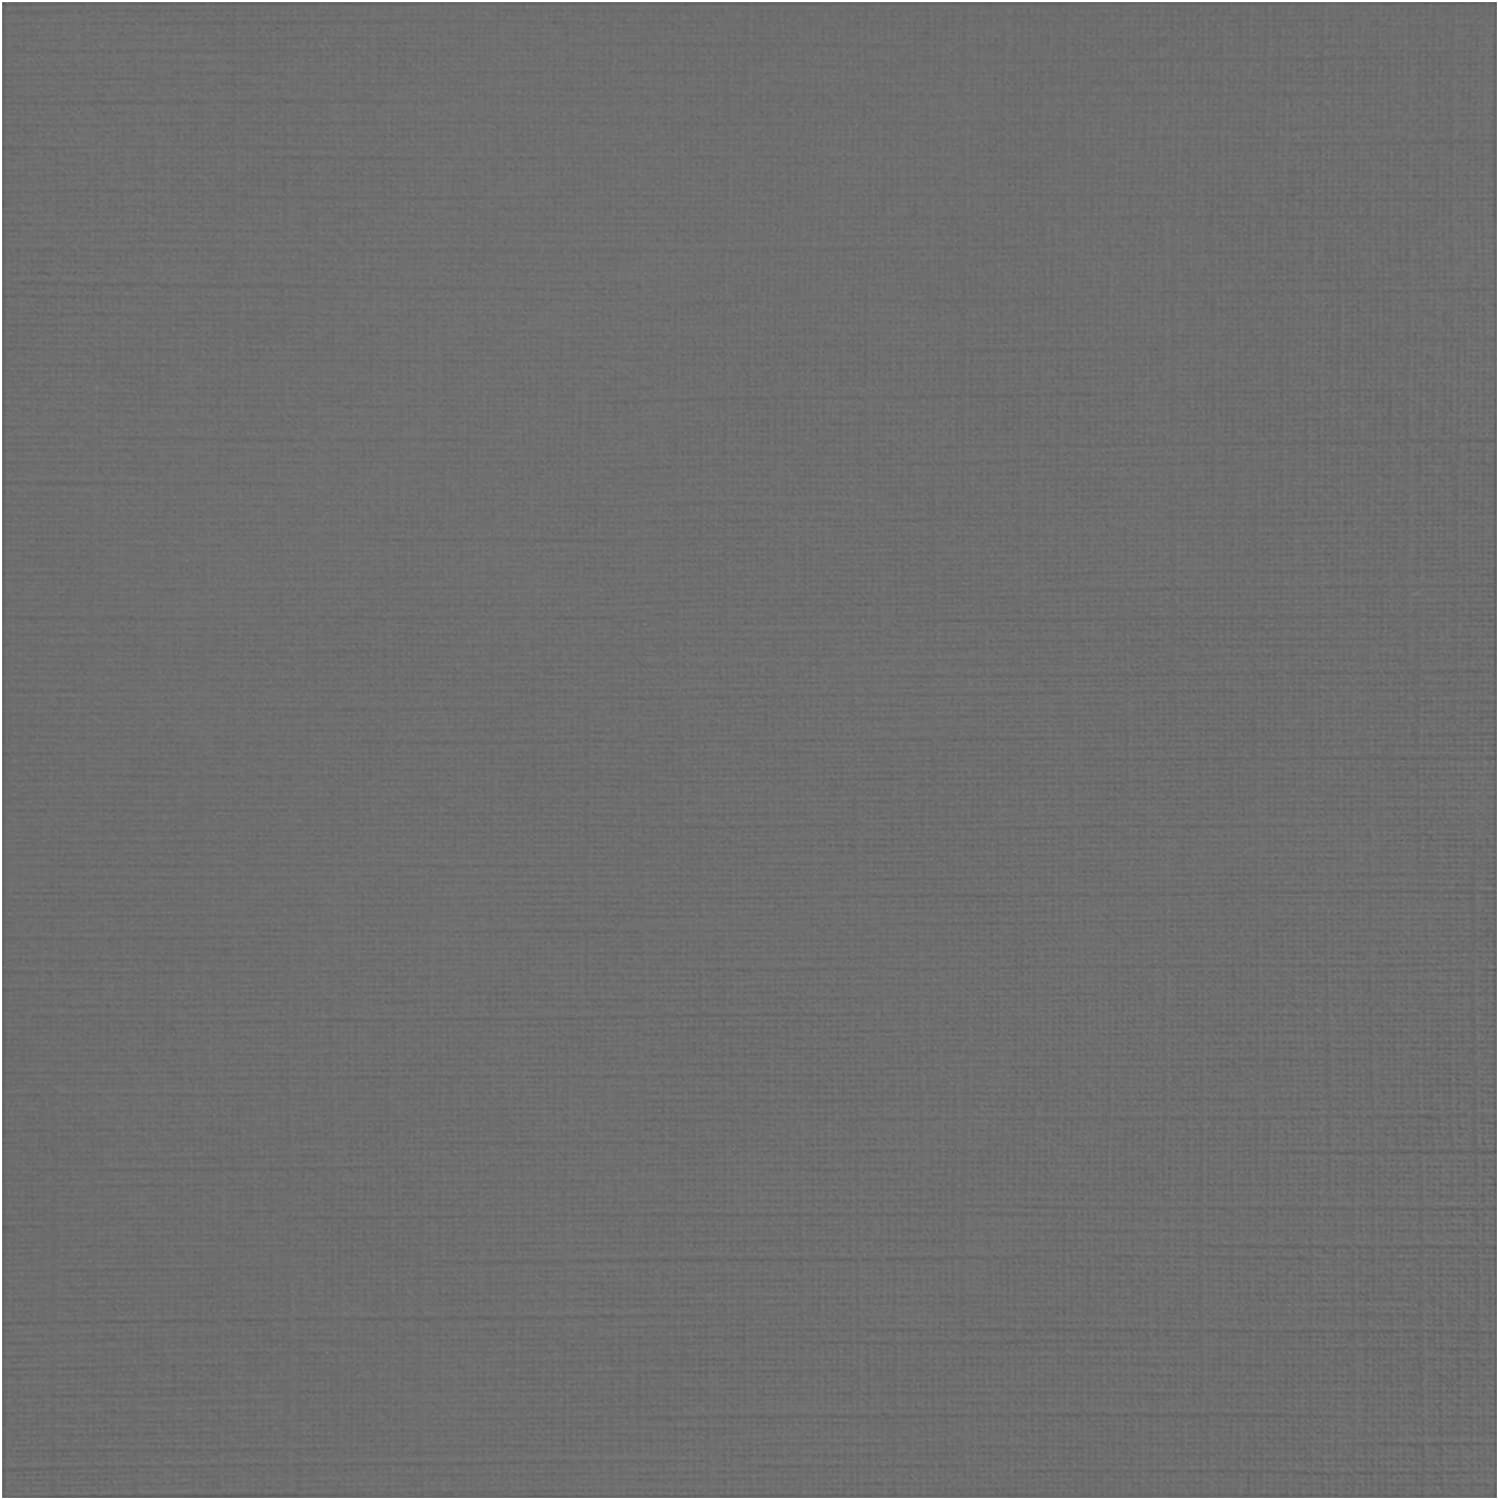 Max 81% OFF 12 x Cardstock - Sterling Gray Linen 50 Perfect online shop Qty. for